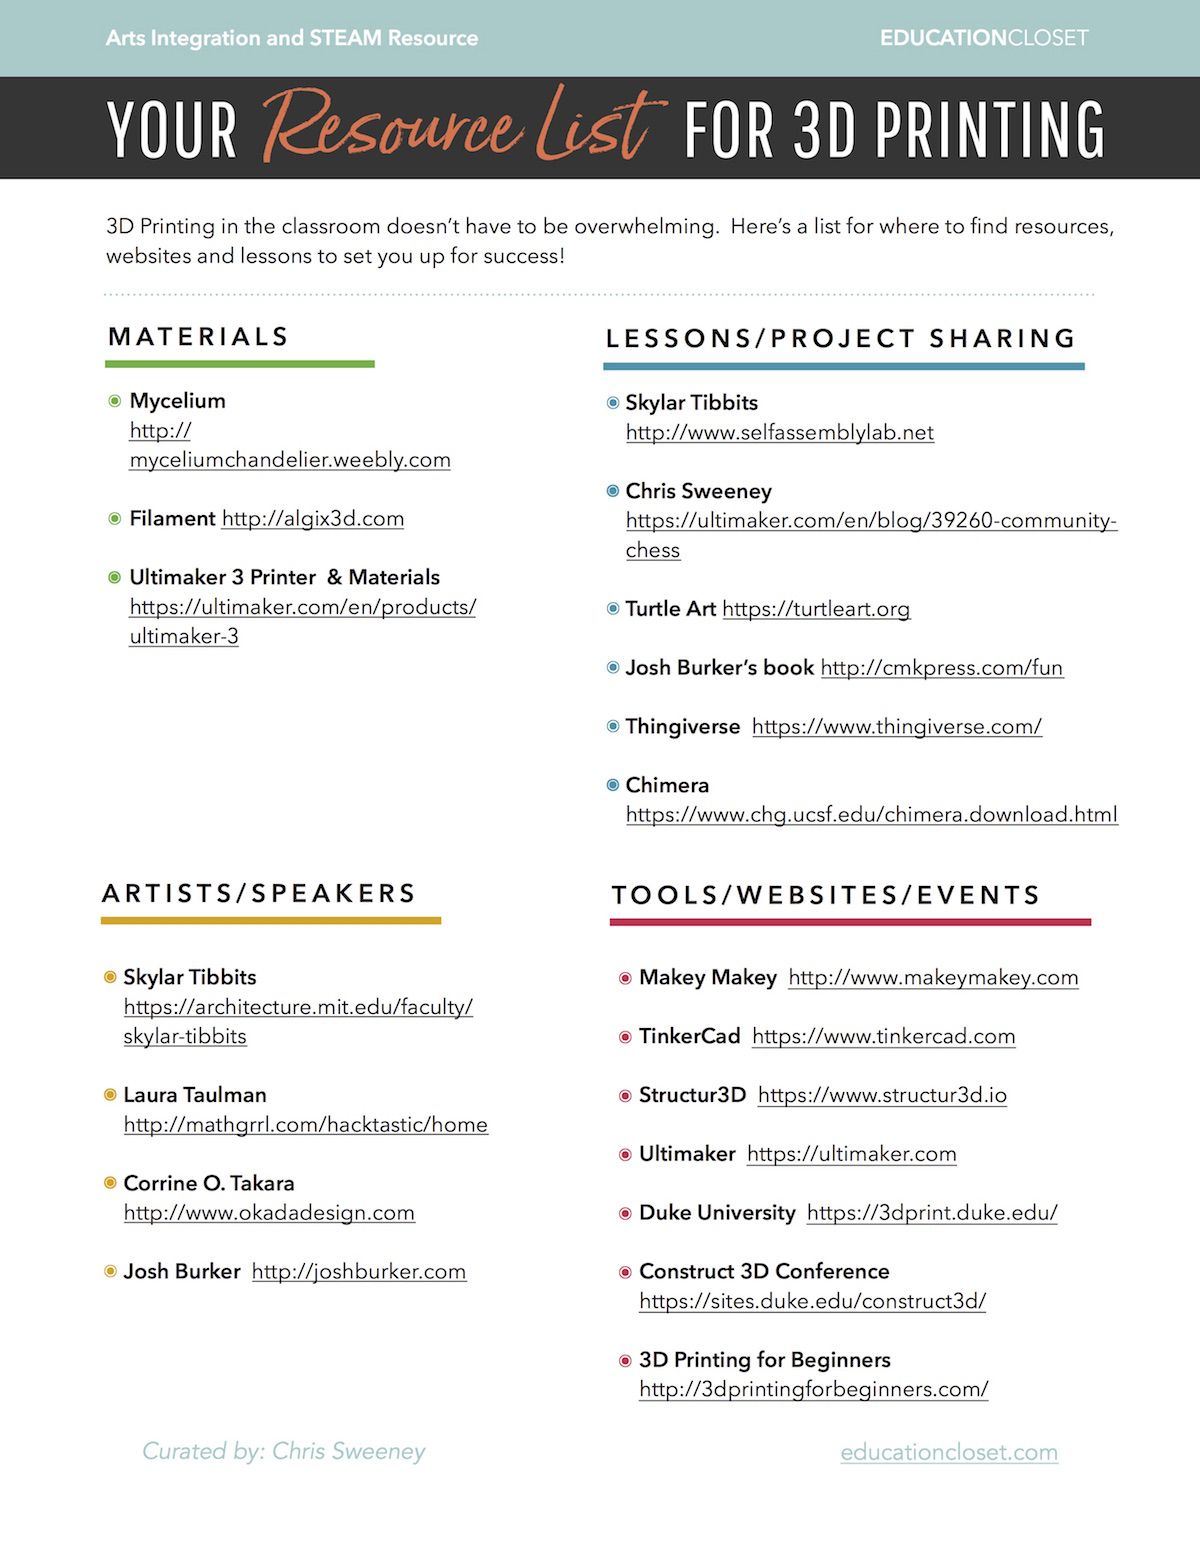 20 Education 3d Printing Resources The Institute For Arts Integration And Steam Business Analyst Resume Resume Examples Job Resume Samples